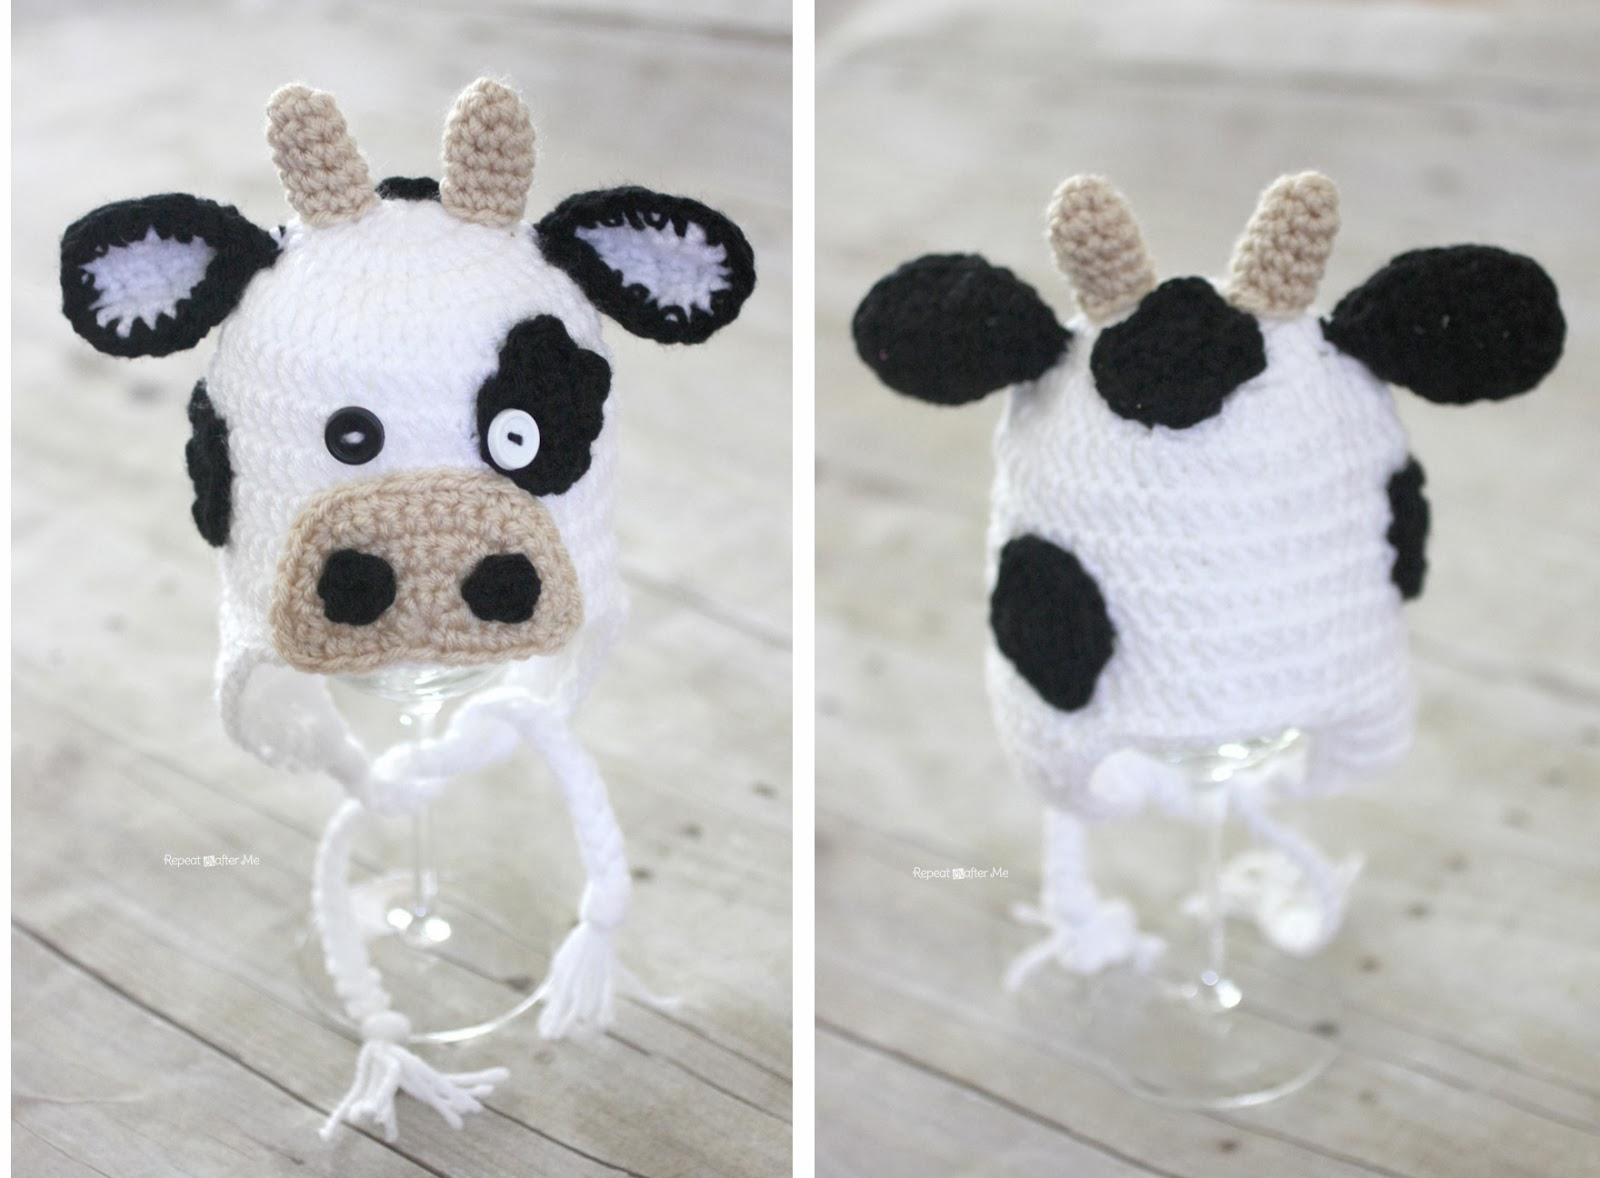 Free Crochet Pattern For Cow Hat : Crochet Cow Hat Pattern - Repeat Crafter Me